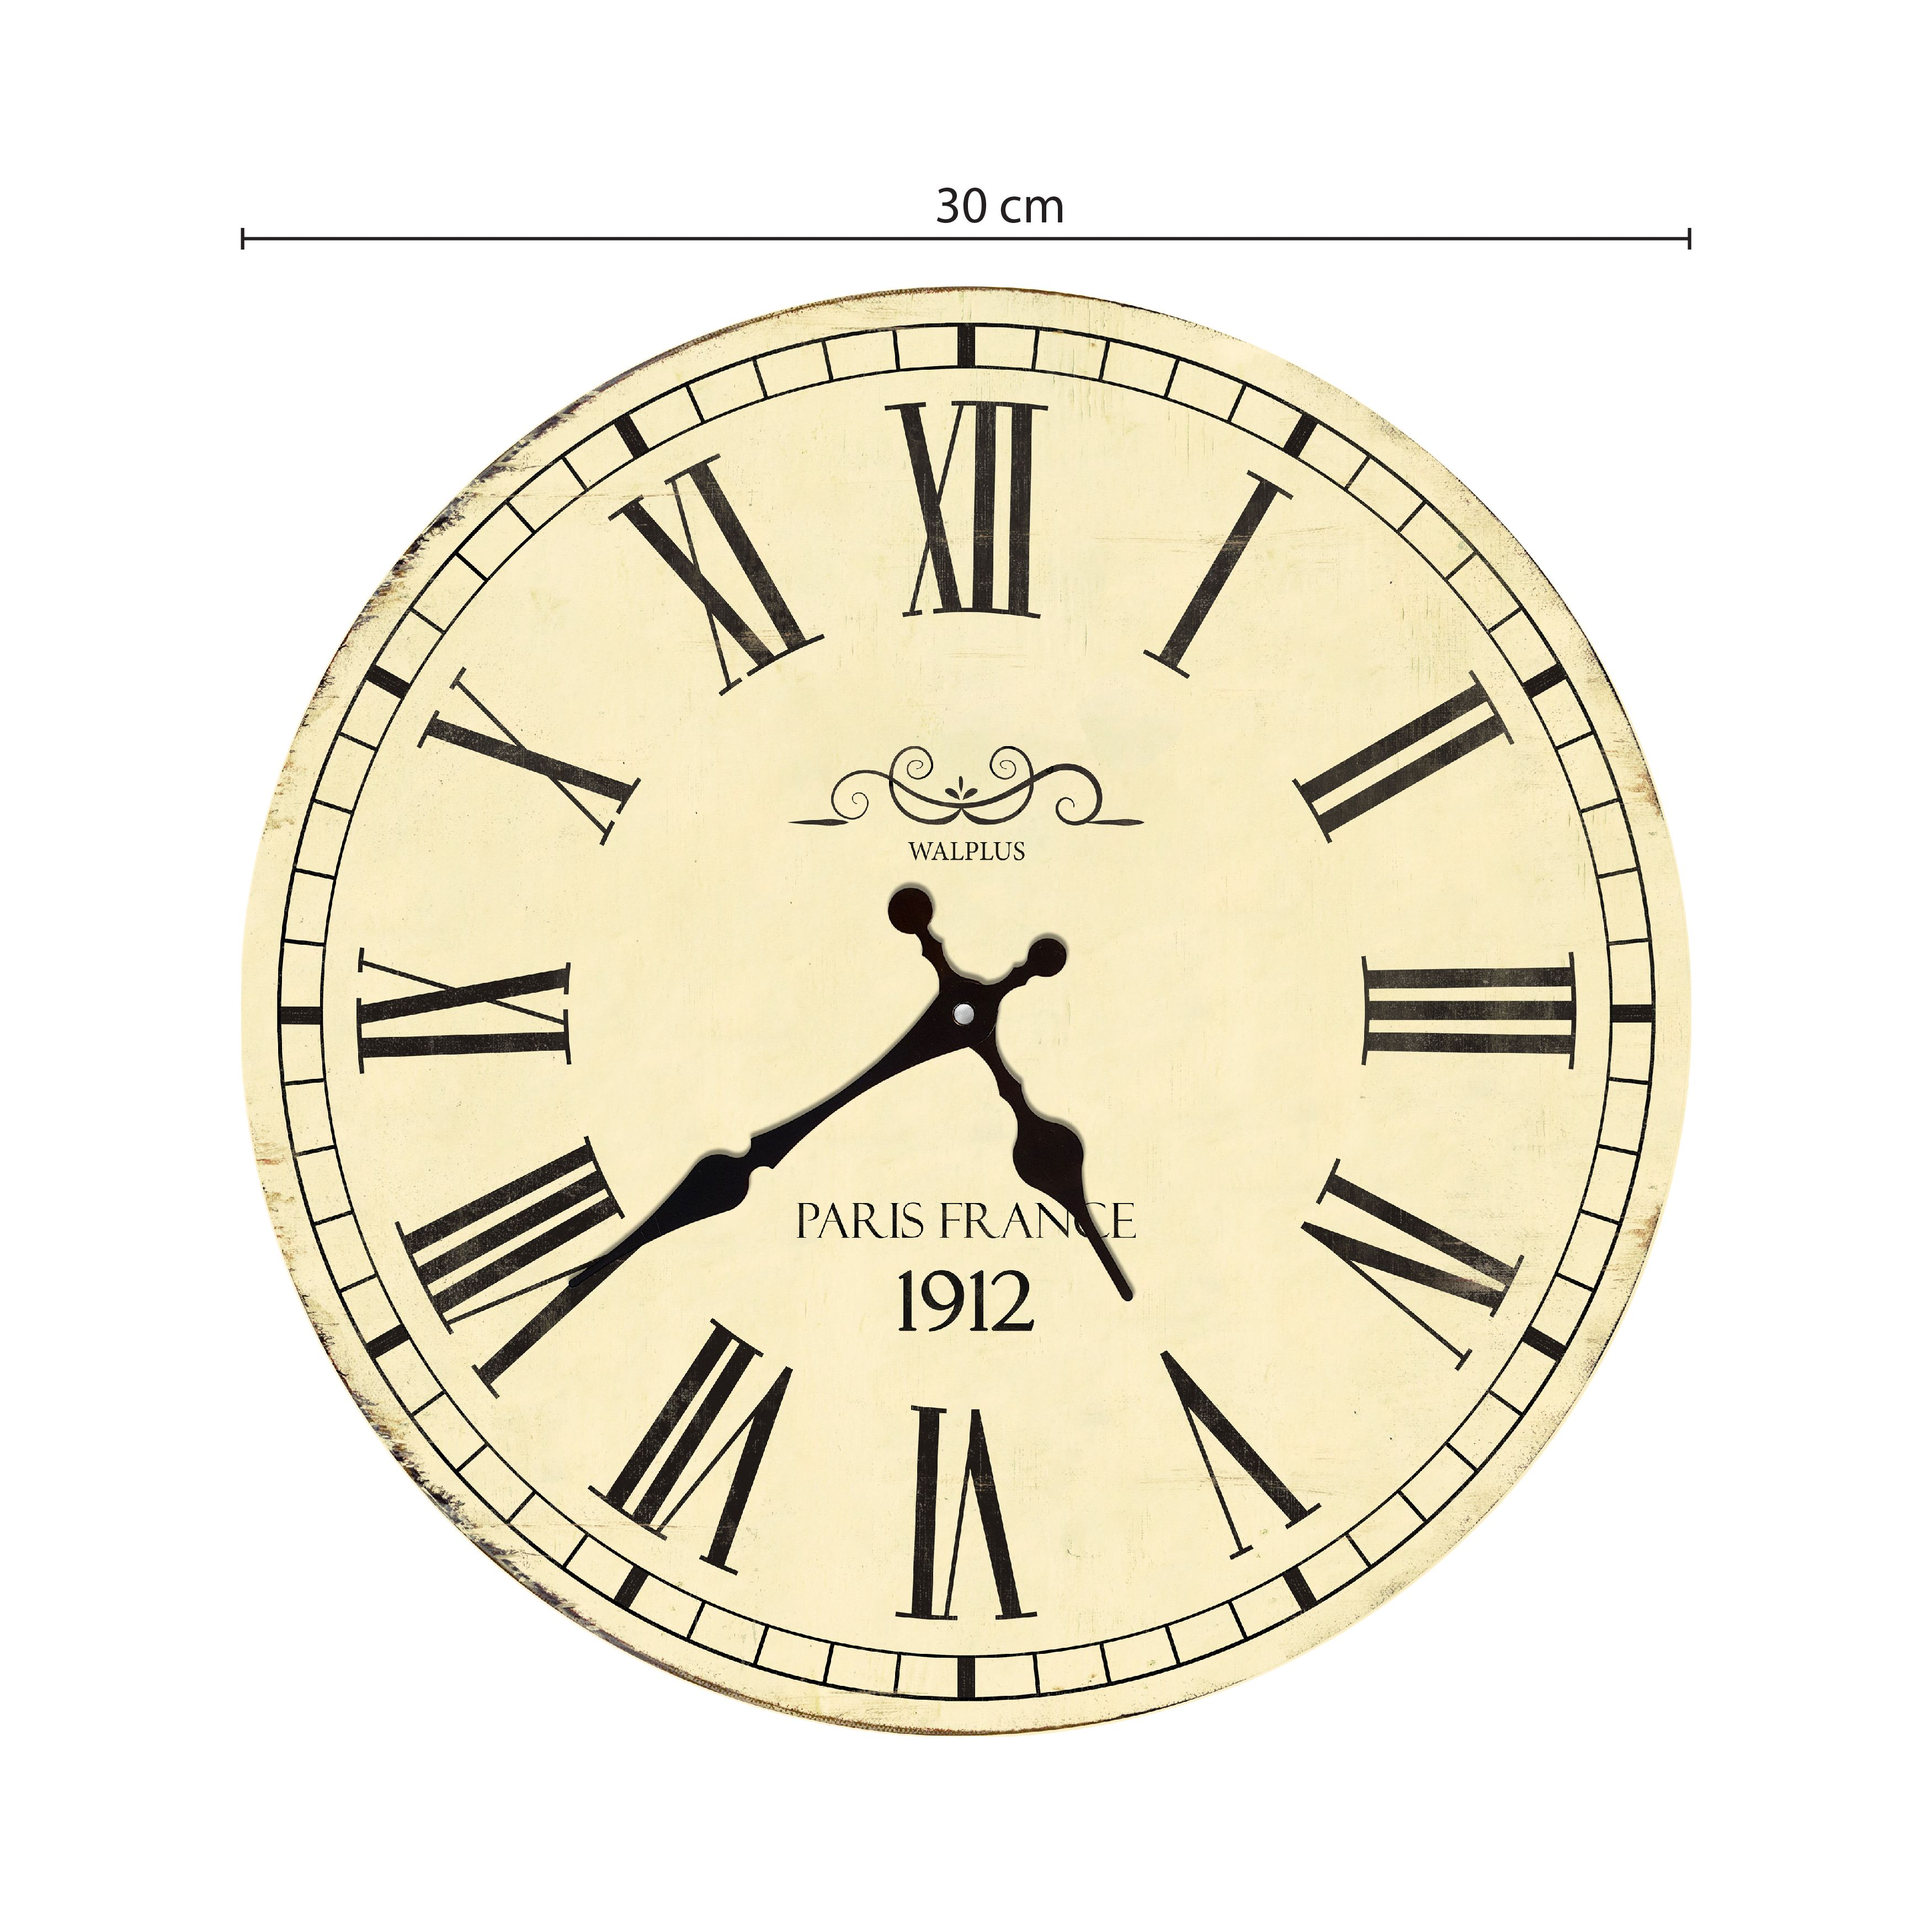 Vintage France Roman Numeral Wall Clock, DIY Art, Kitchen Decorations, Bedroom, Home Design, House Décor, Living room ideas